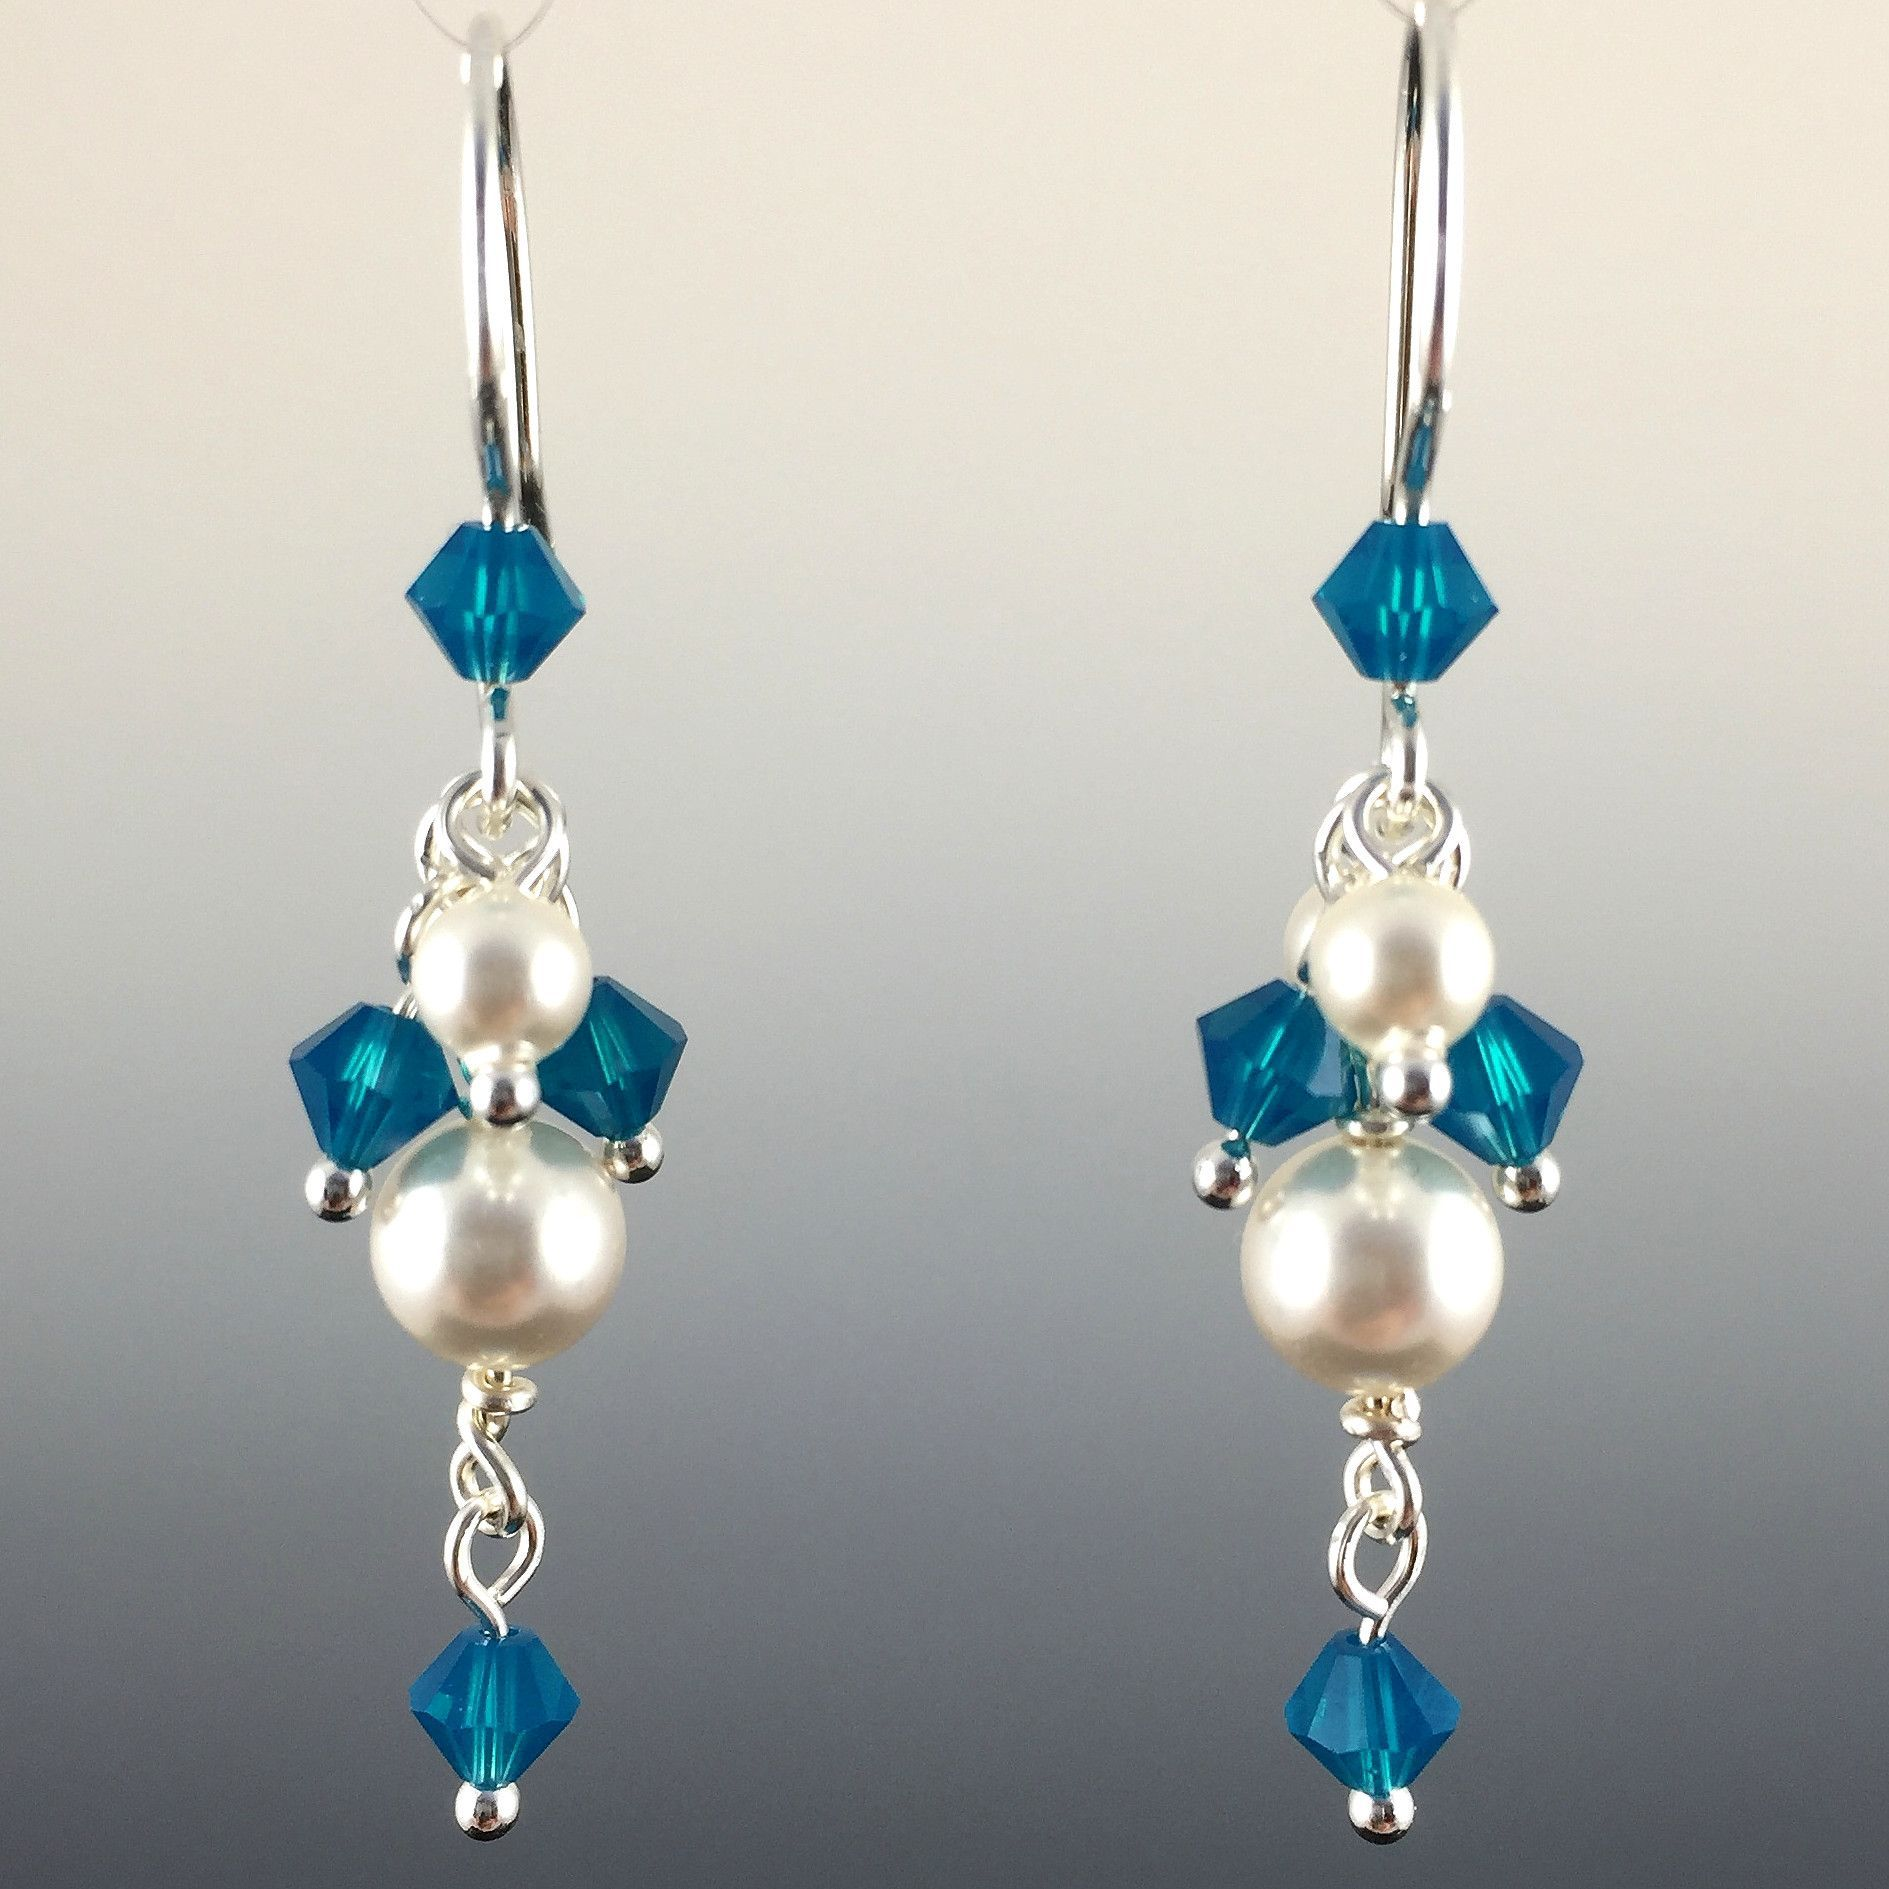 swarovski crystal & sterling silver short cluster earrings with